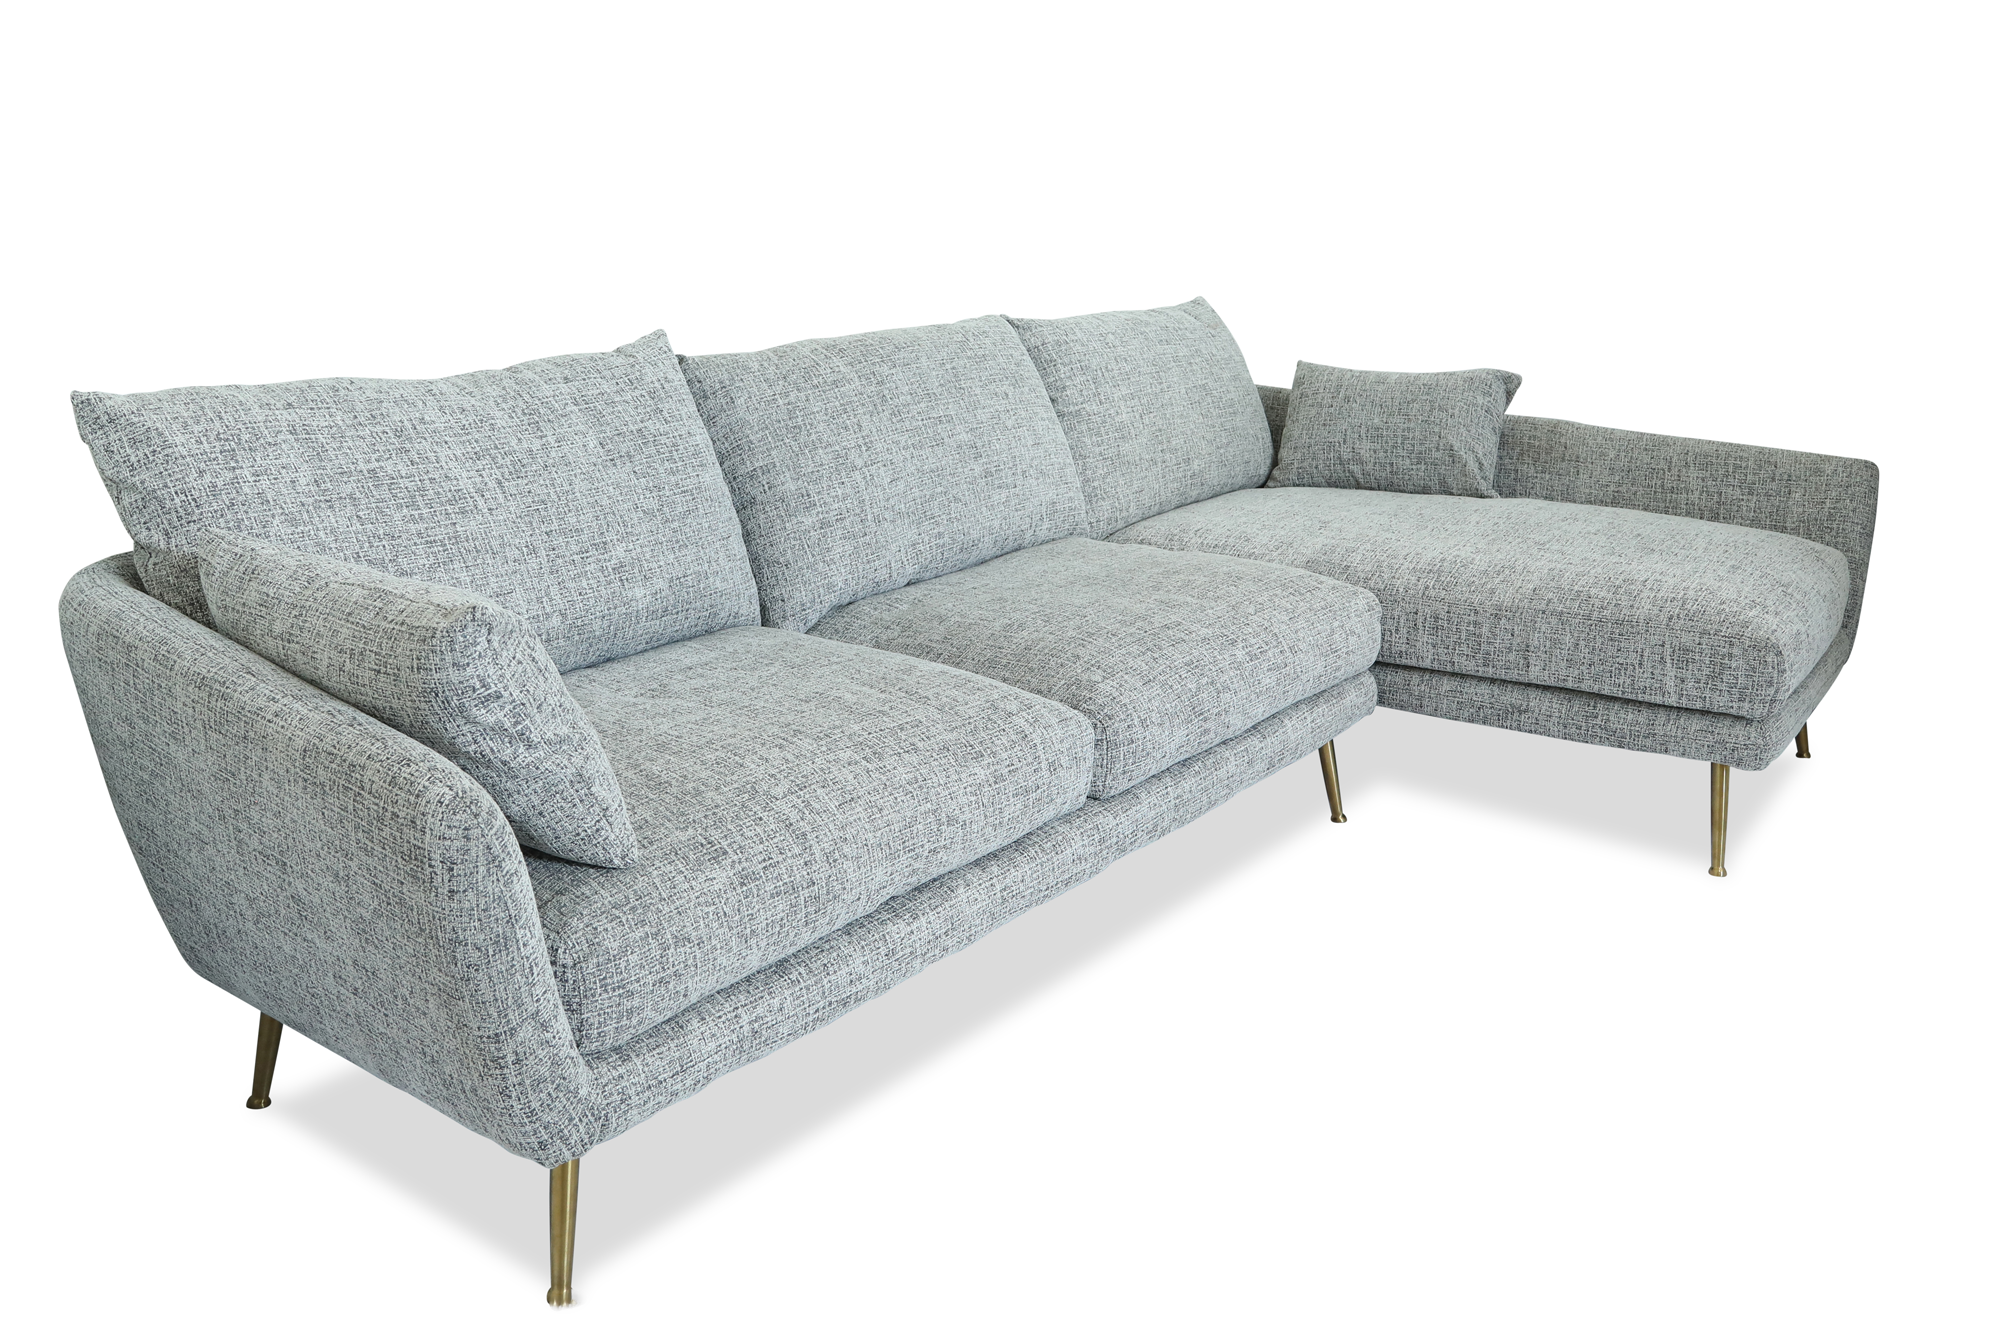 Image of: Harlow Mid Century Modern Sectional Sofa Down Feathers Gold Legs Edloe Finch Furniture Co